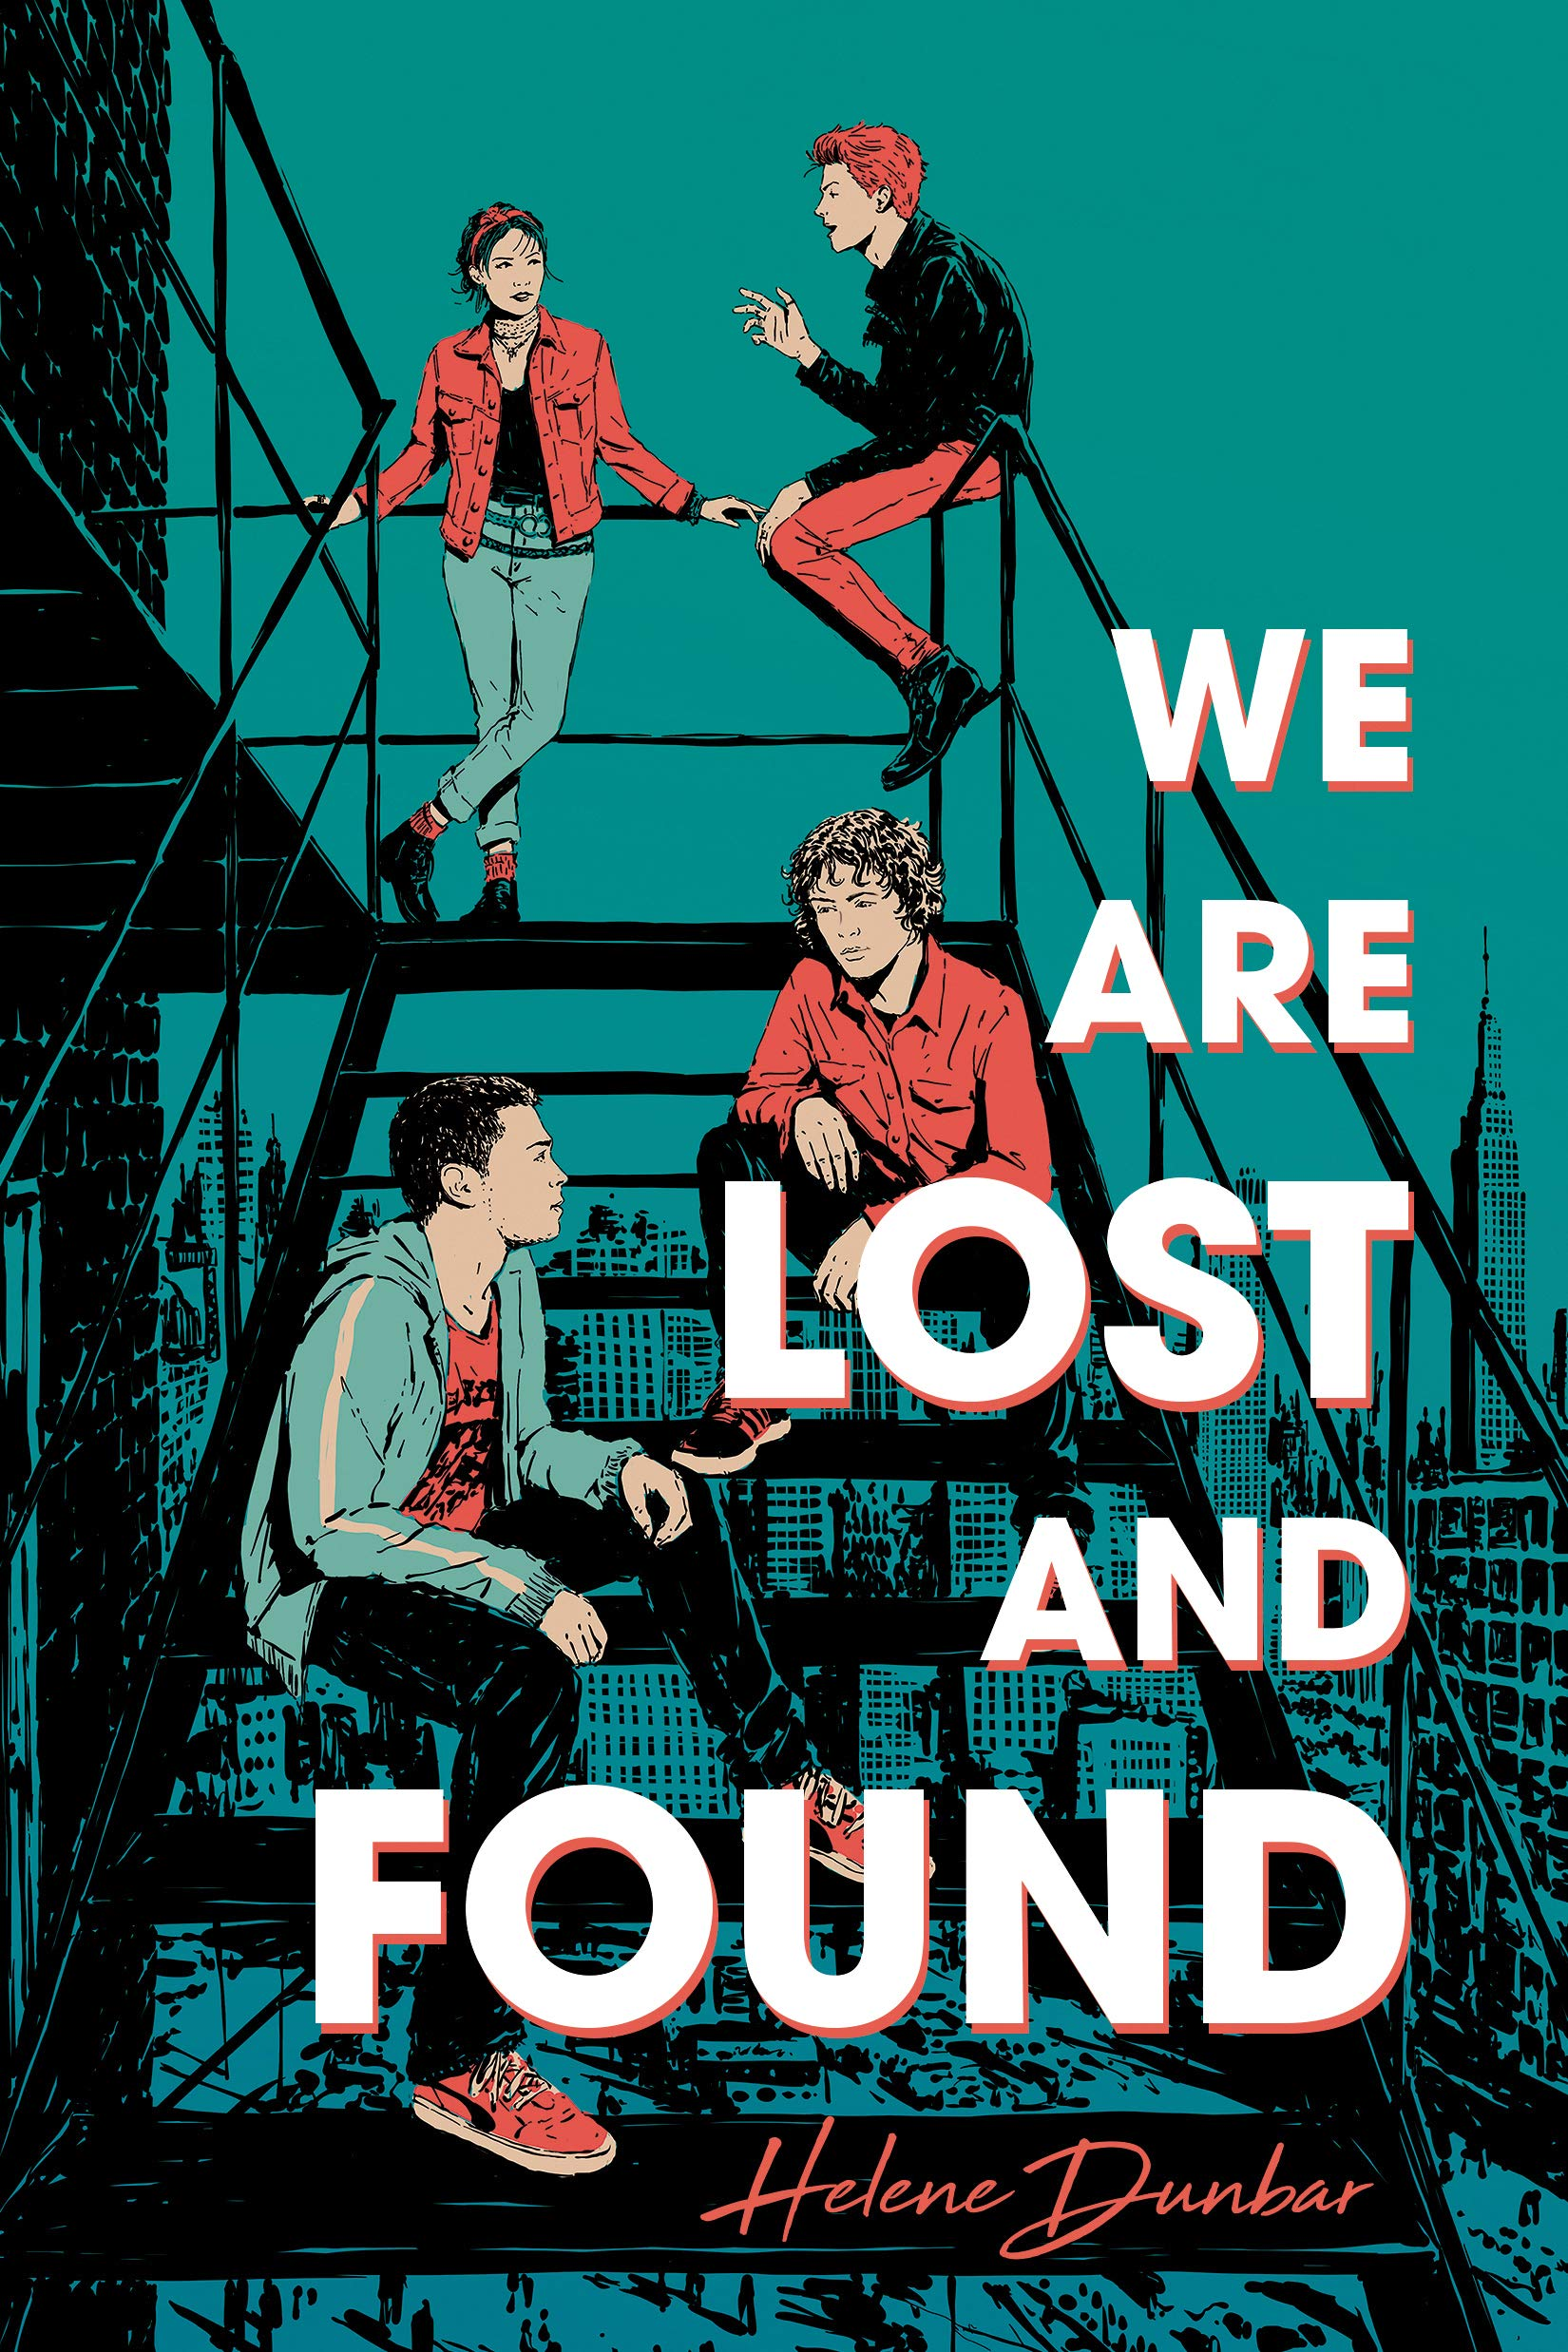 Amazon.com: We Are Lost and Found (9781492681045): Dunbar, Helene: Books